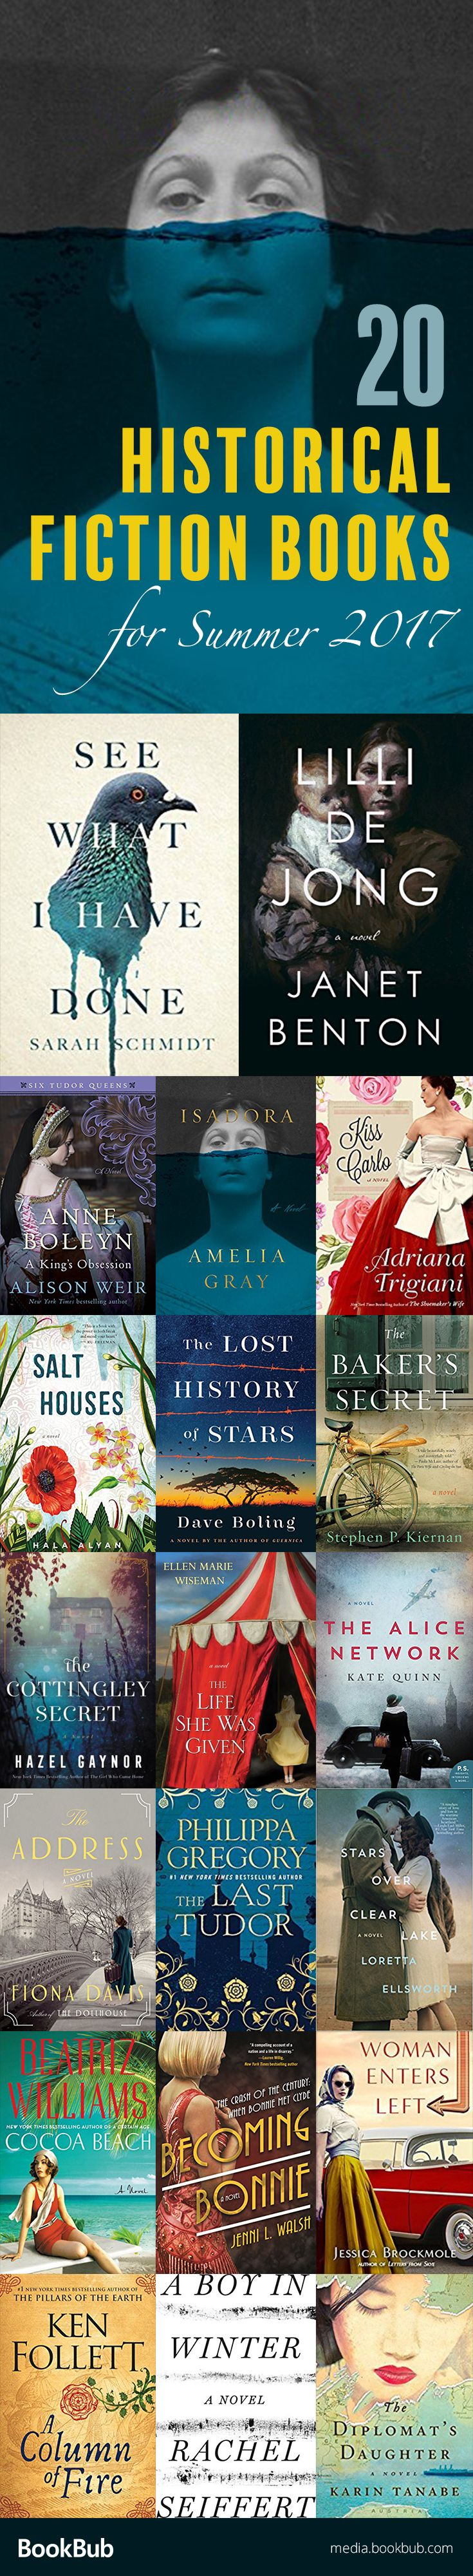 20 history books worth reading summer 2017. If you love historical fiction, these book recommendations are for you! Including great WWII fiction.